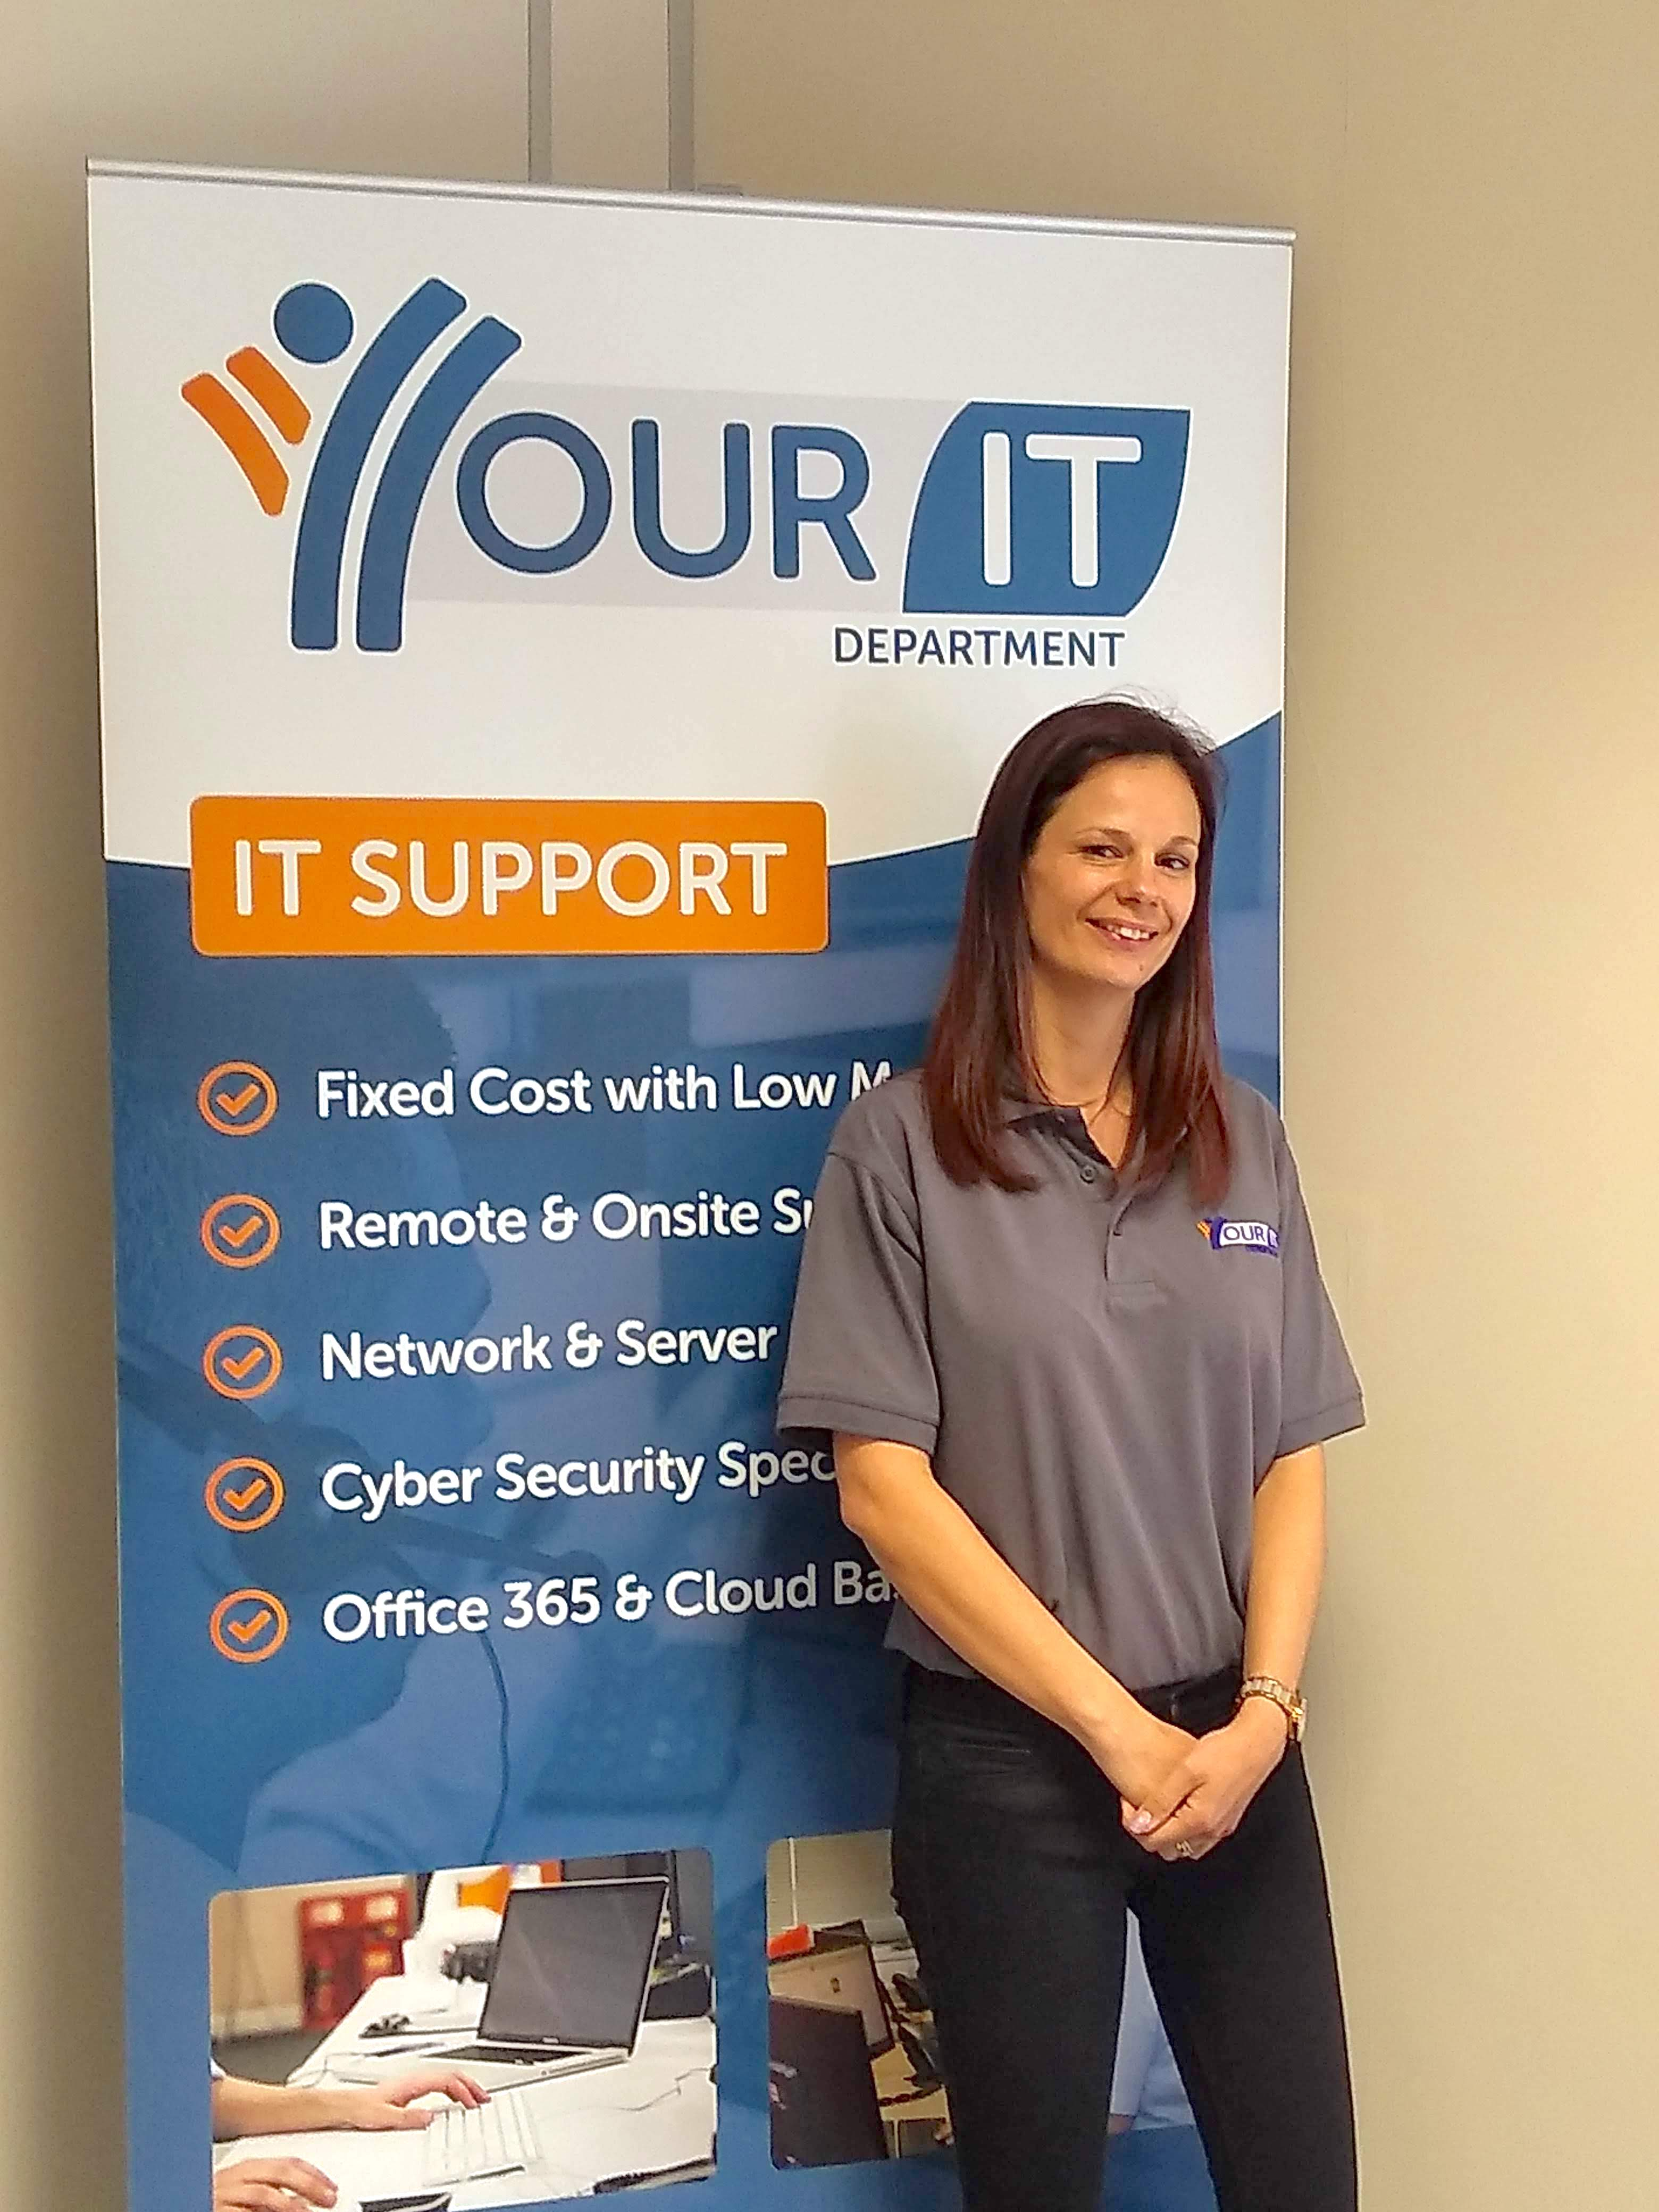 Nottingham-based IT firm pioneers shift with first female employee